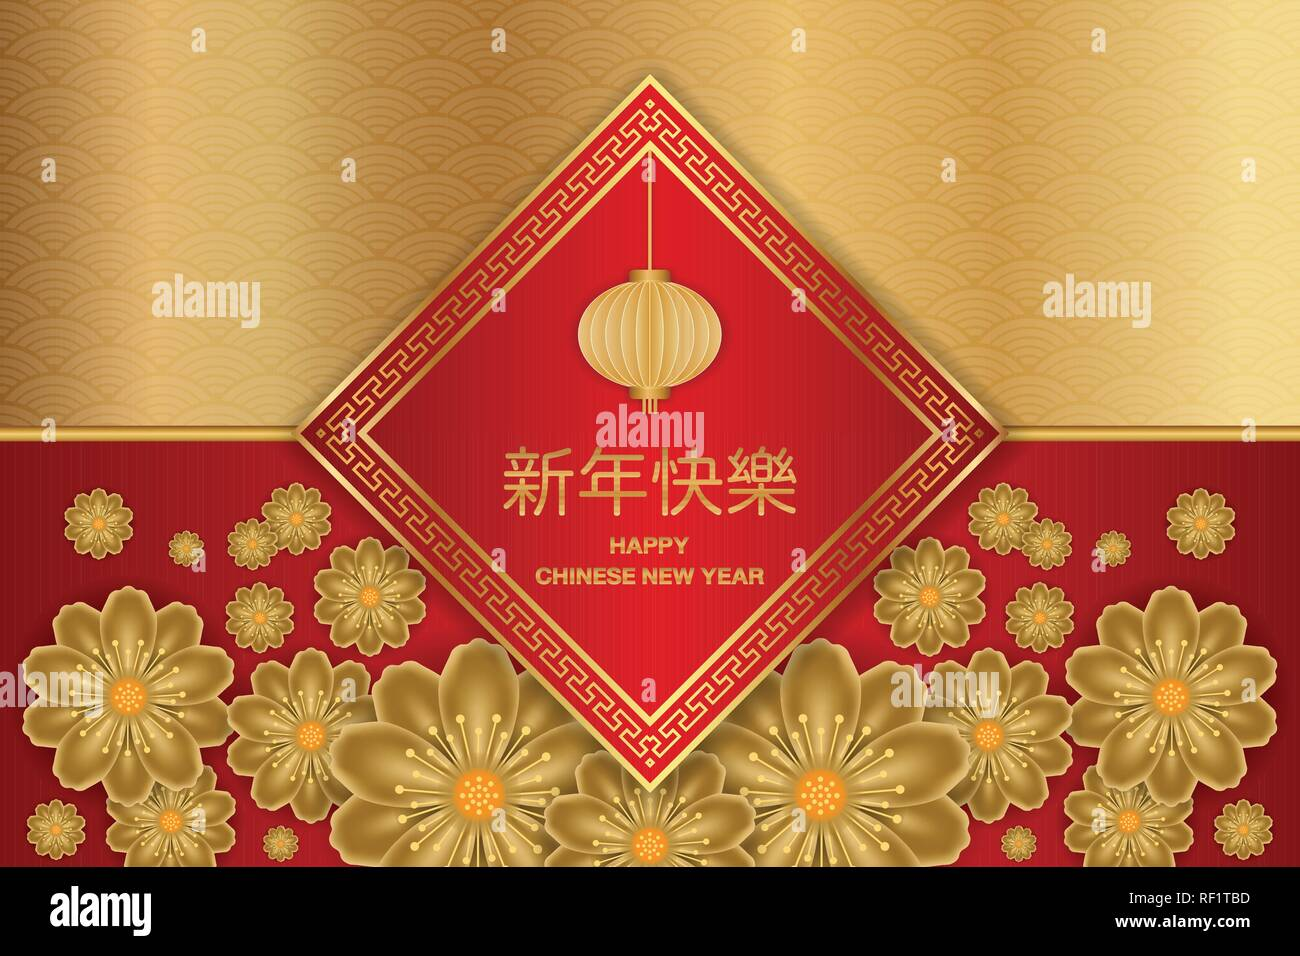 Chinese new year greeting card with cherry blossom, lantern, and traditional asian patterns. Vector illustration. Translation of Chinese Calligraphy : Stock Vector